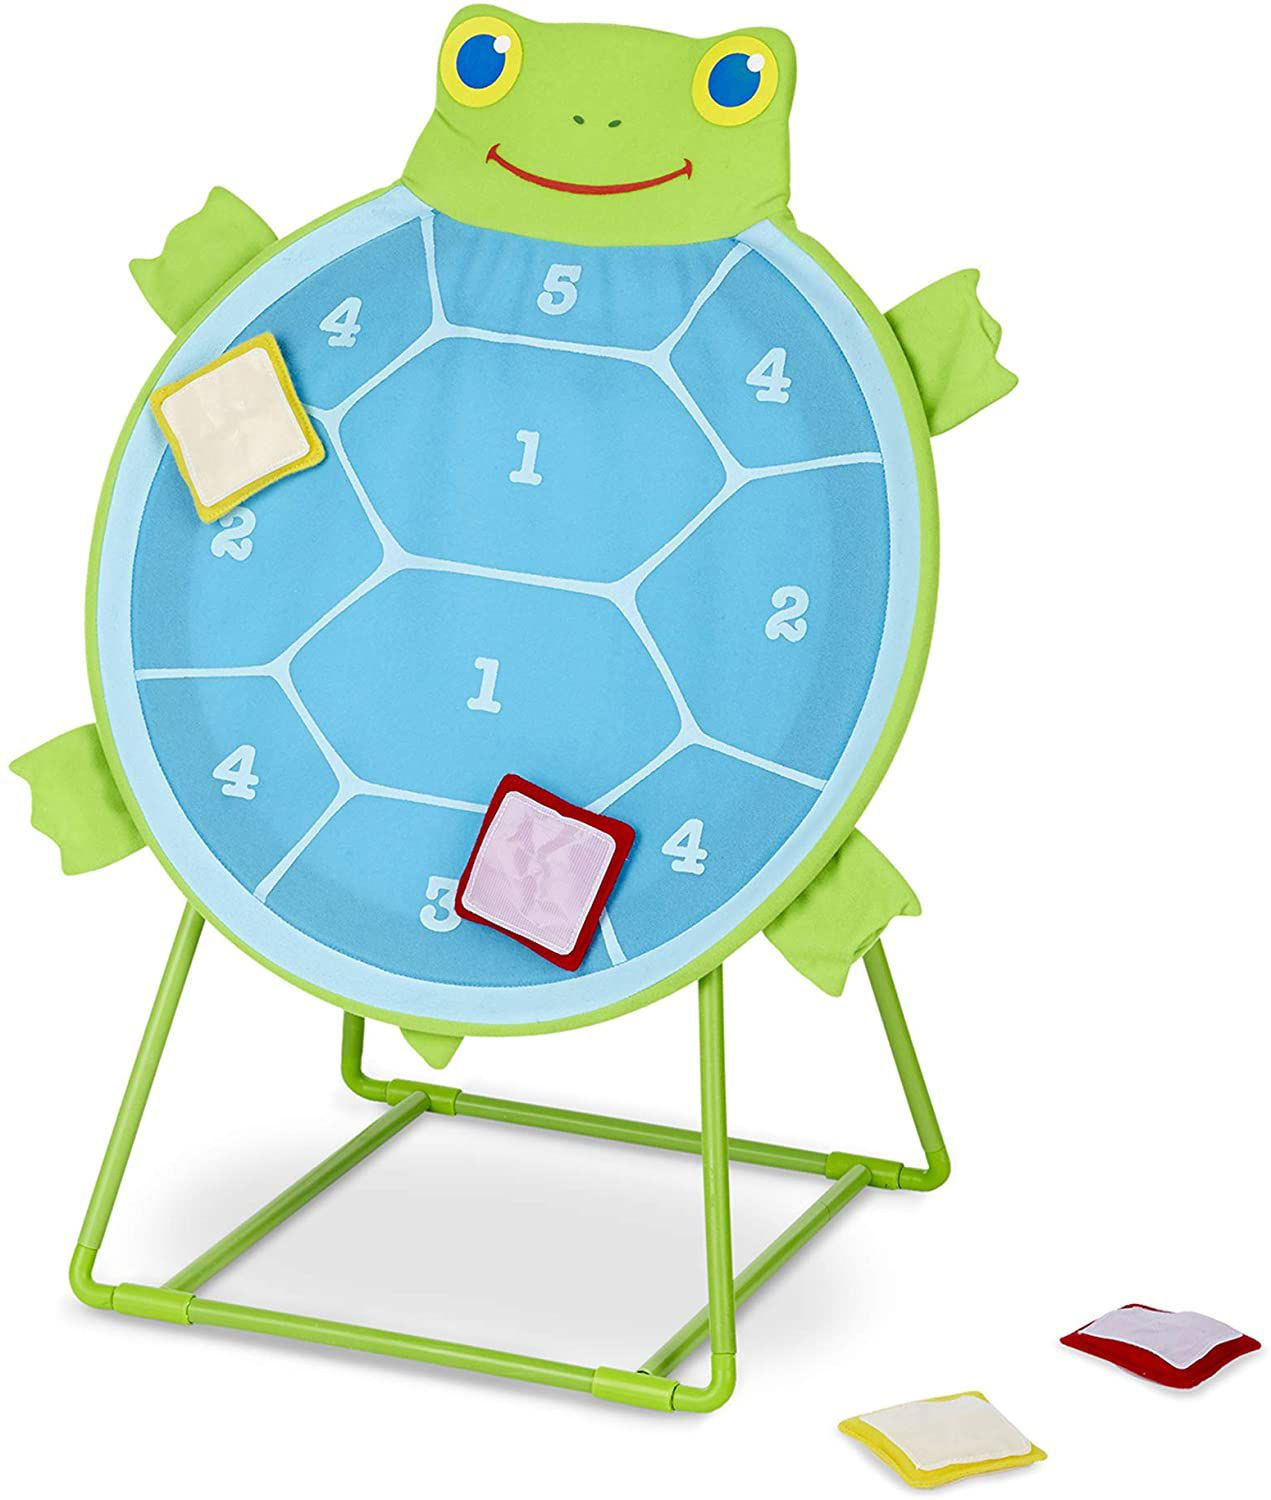 Melissa & Doug Sunny Patch Dilly Dally Tootle Turtle Target Game